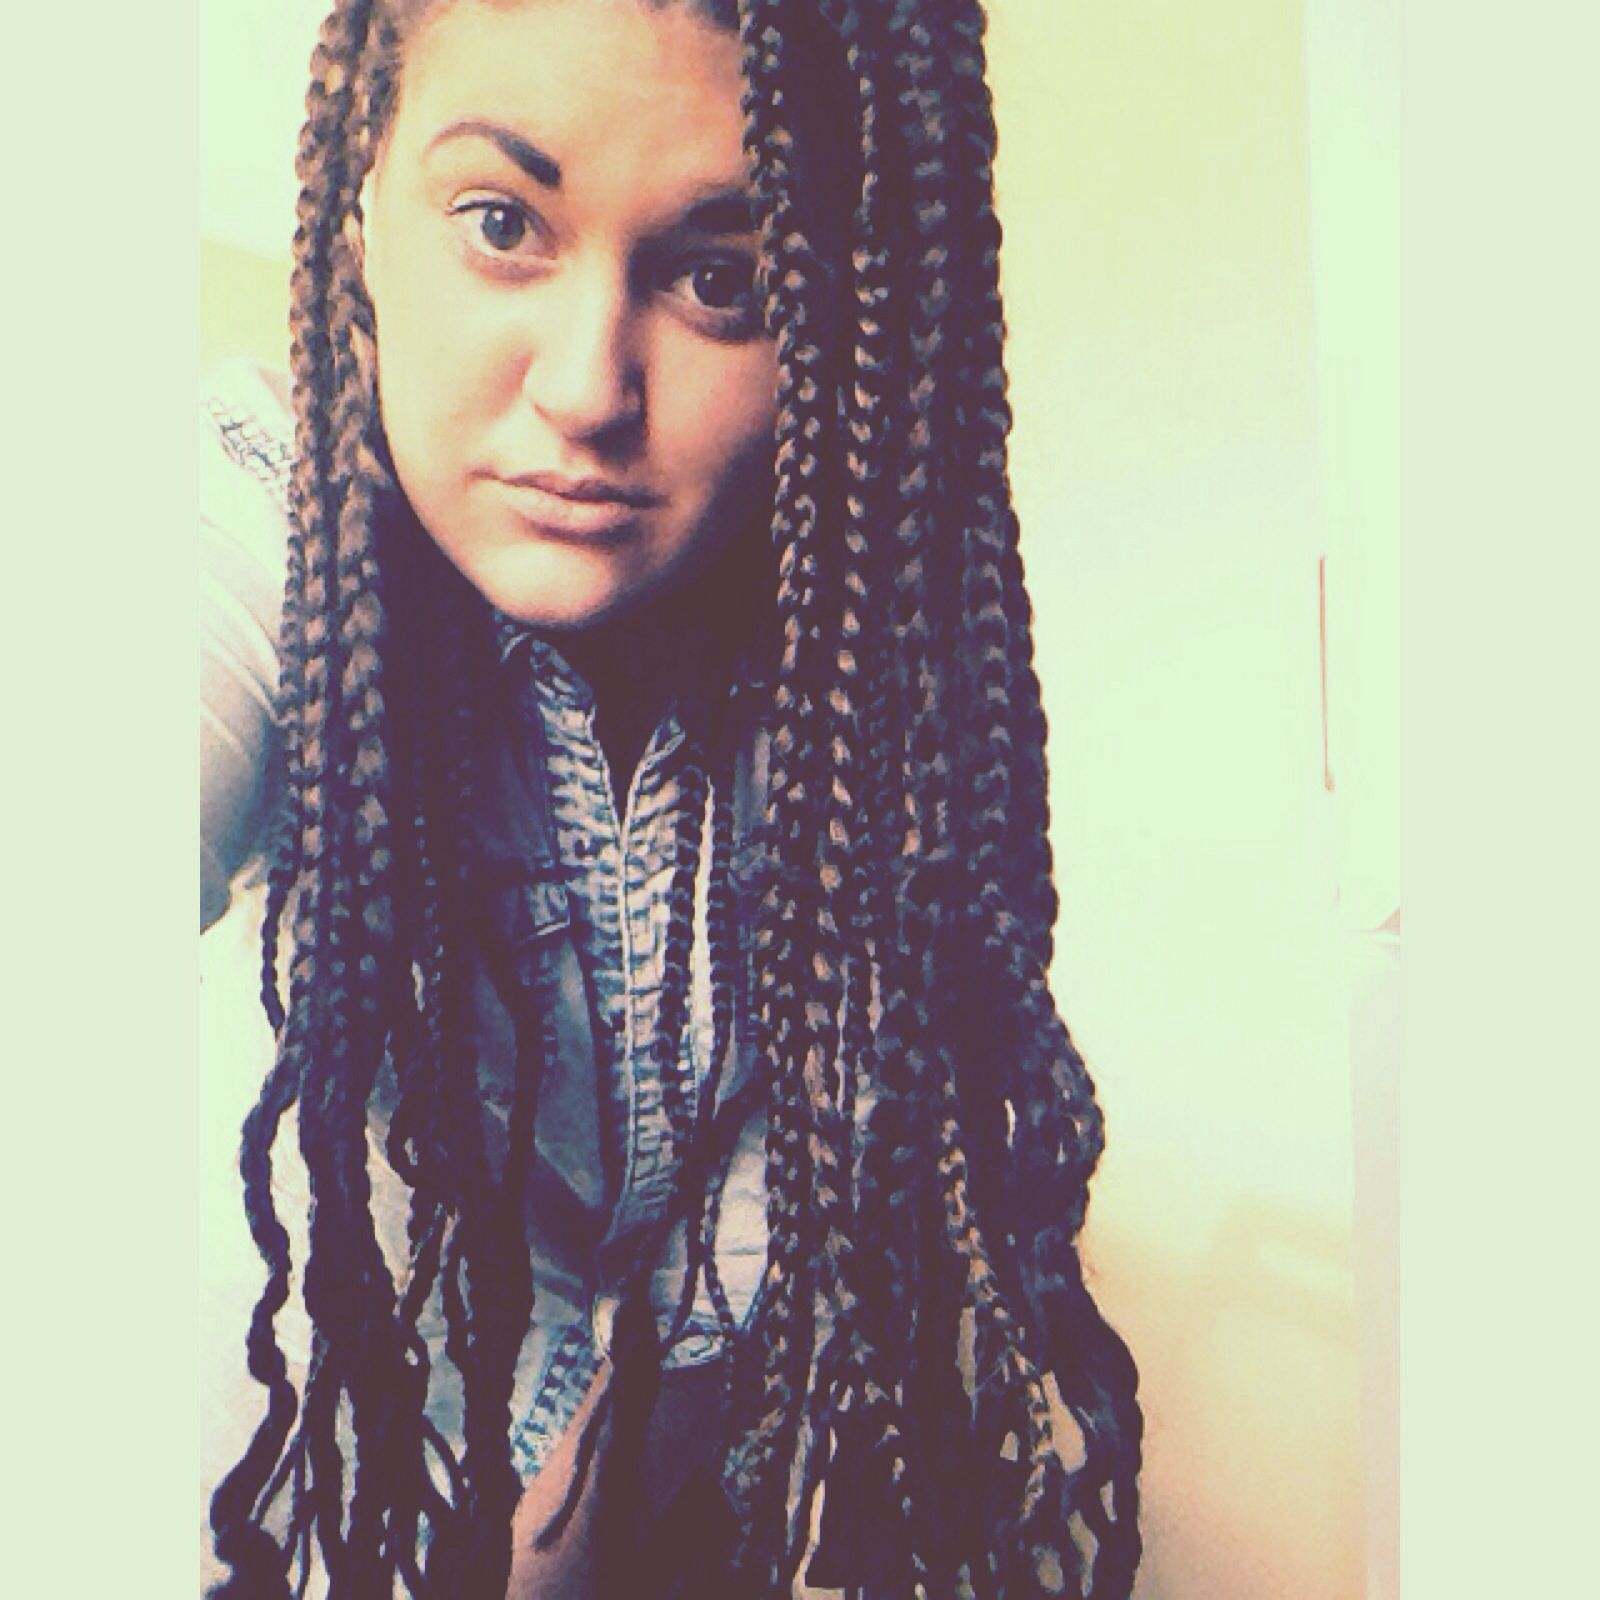 White girl with box braids | Hair/nails/makeup | Pinterest ...